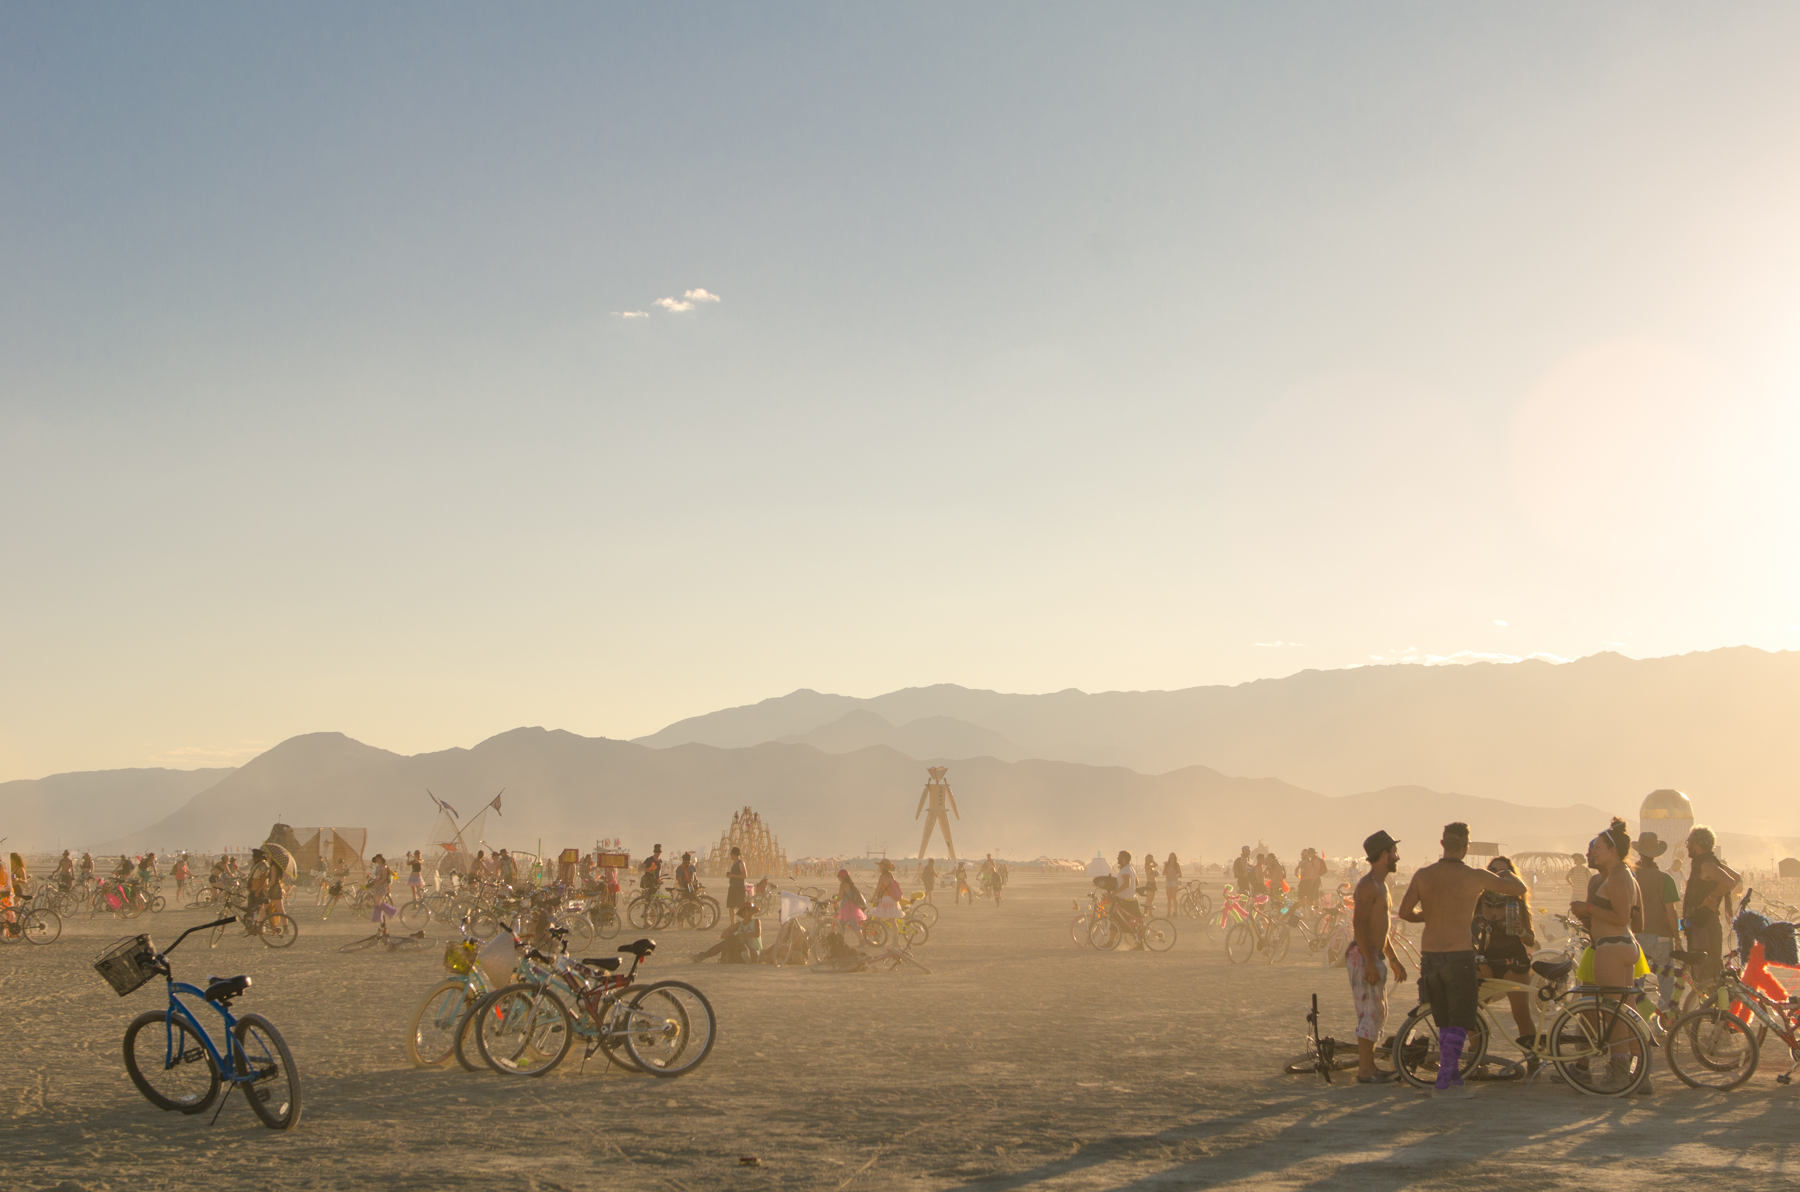 The Playa at sunset: when the dust and golden light combine to create something truly magical that's over in less than an hour.